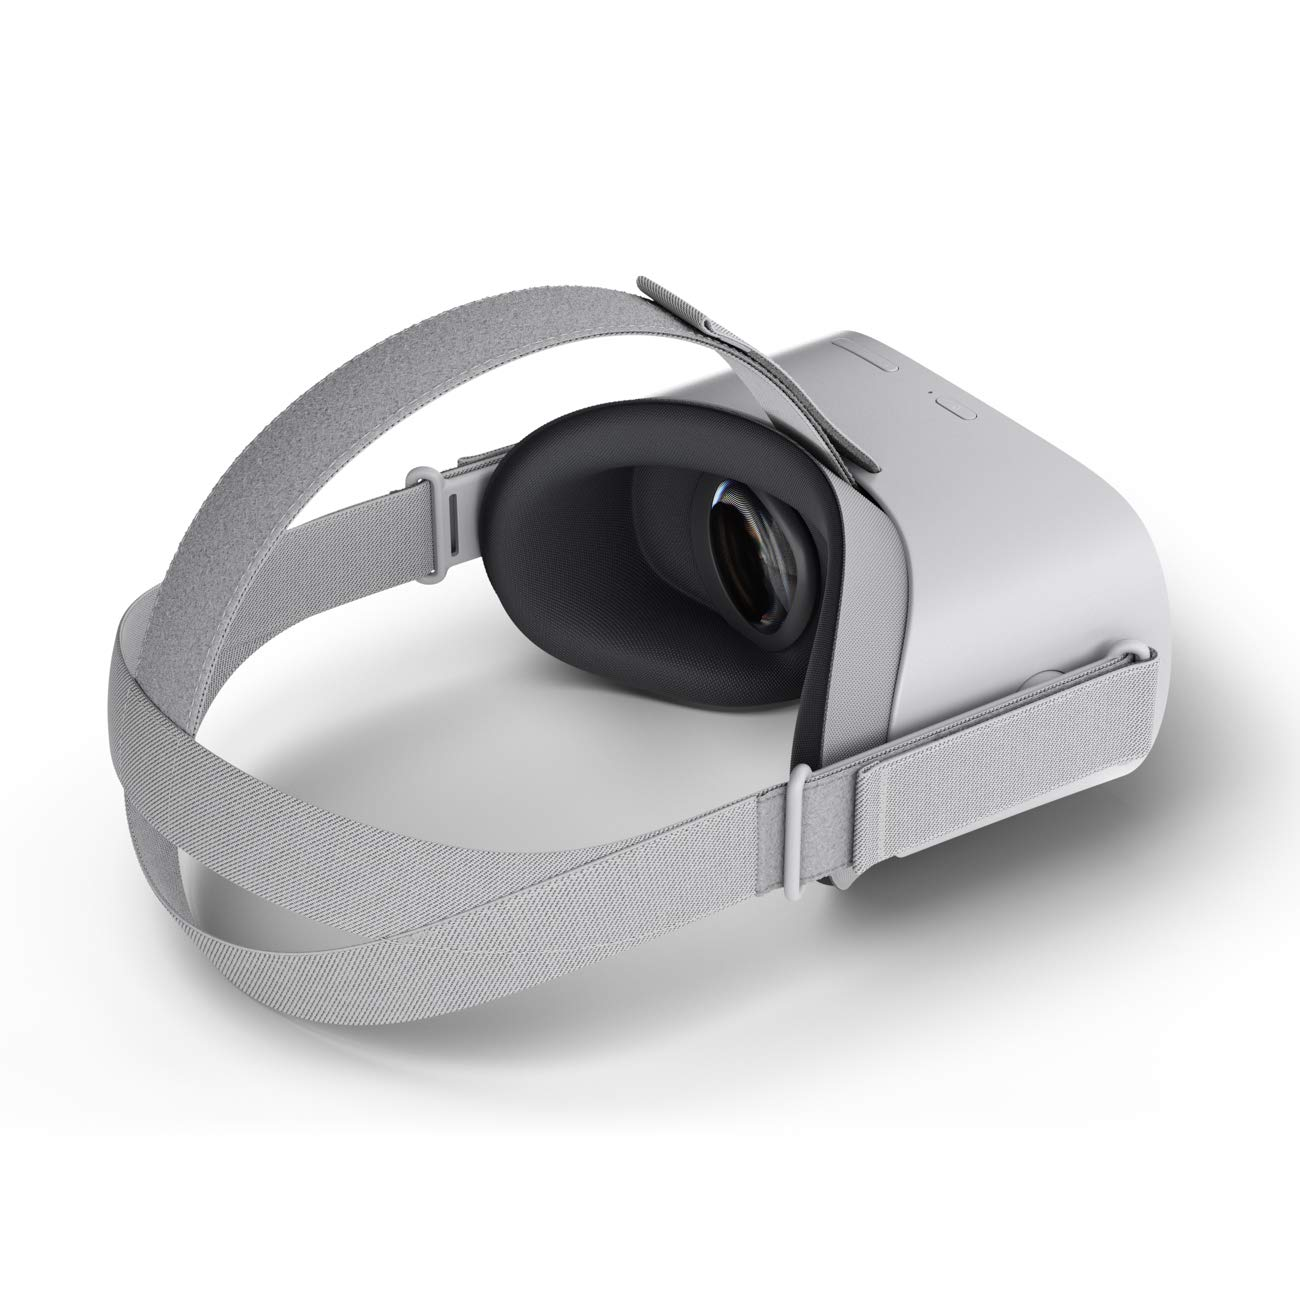 Oculus Go Standalone Virtual Reality Headset  - 32GB by Oculus (Image #4)